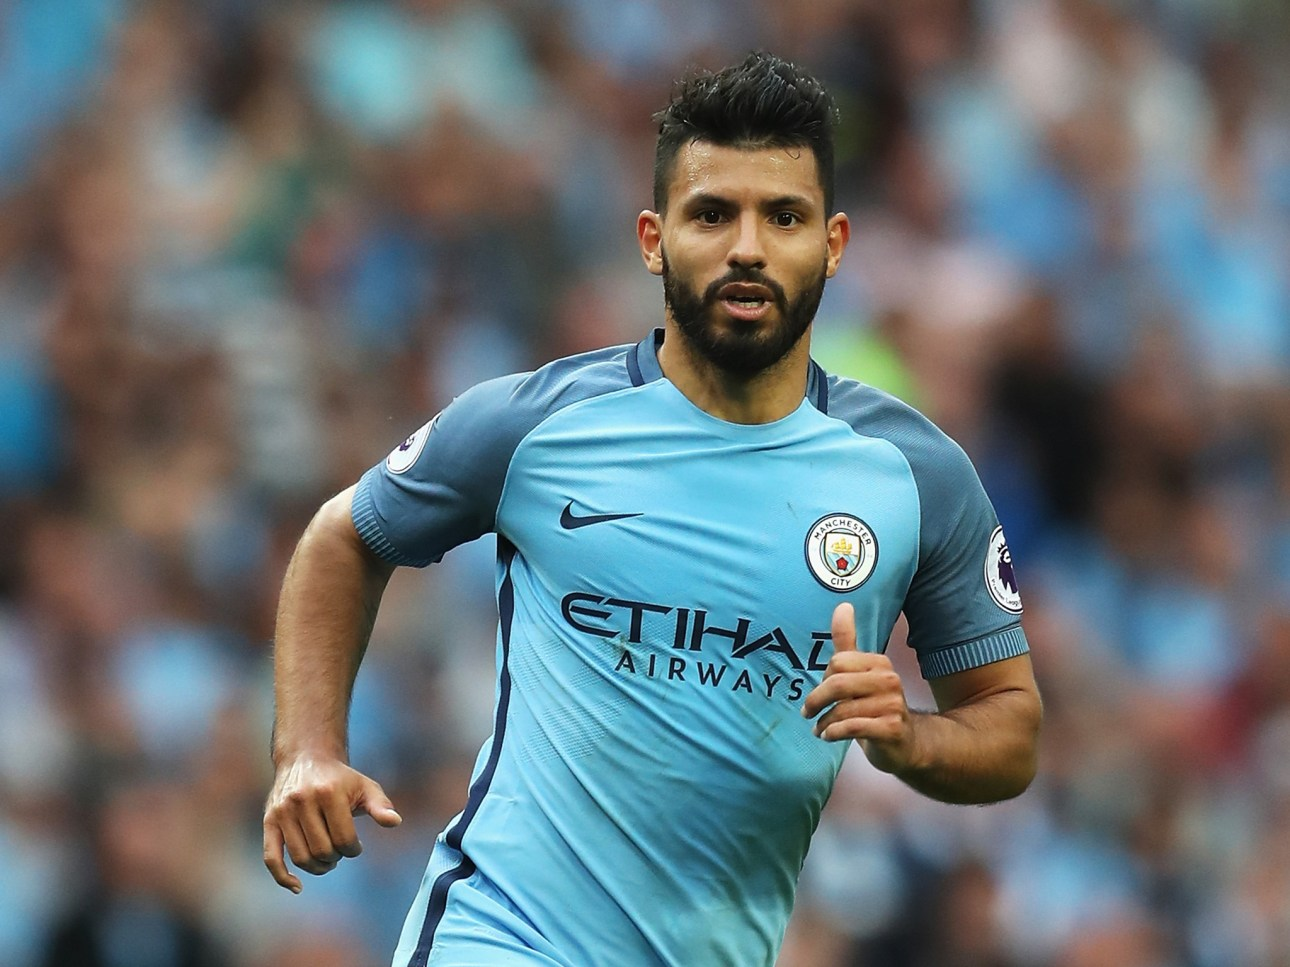 EL MUNDO DEPORTIVO: AGUERO WILL HAVE A MEDICAL EXAMINATION AND SIGN A CONTRACT WITH BARCELONA AFTER THE UCL FINAL